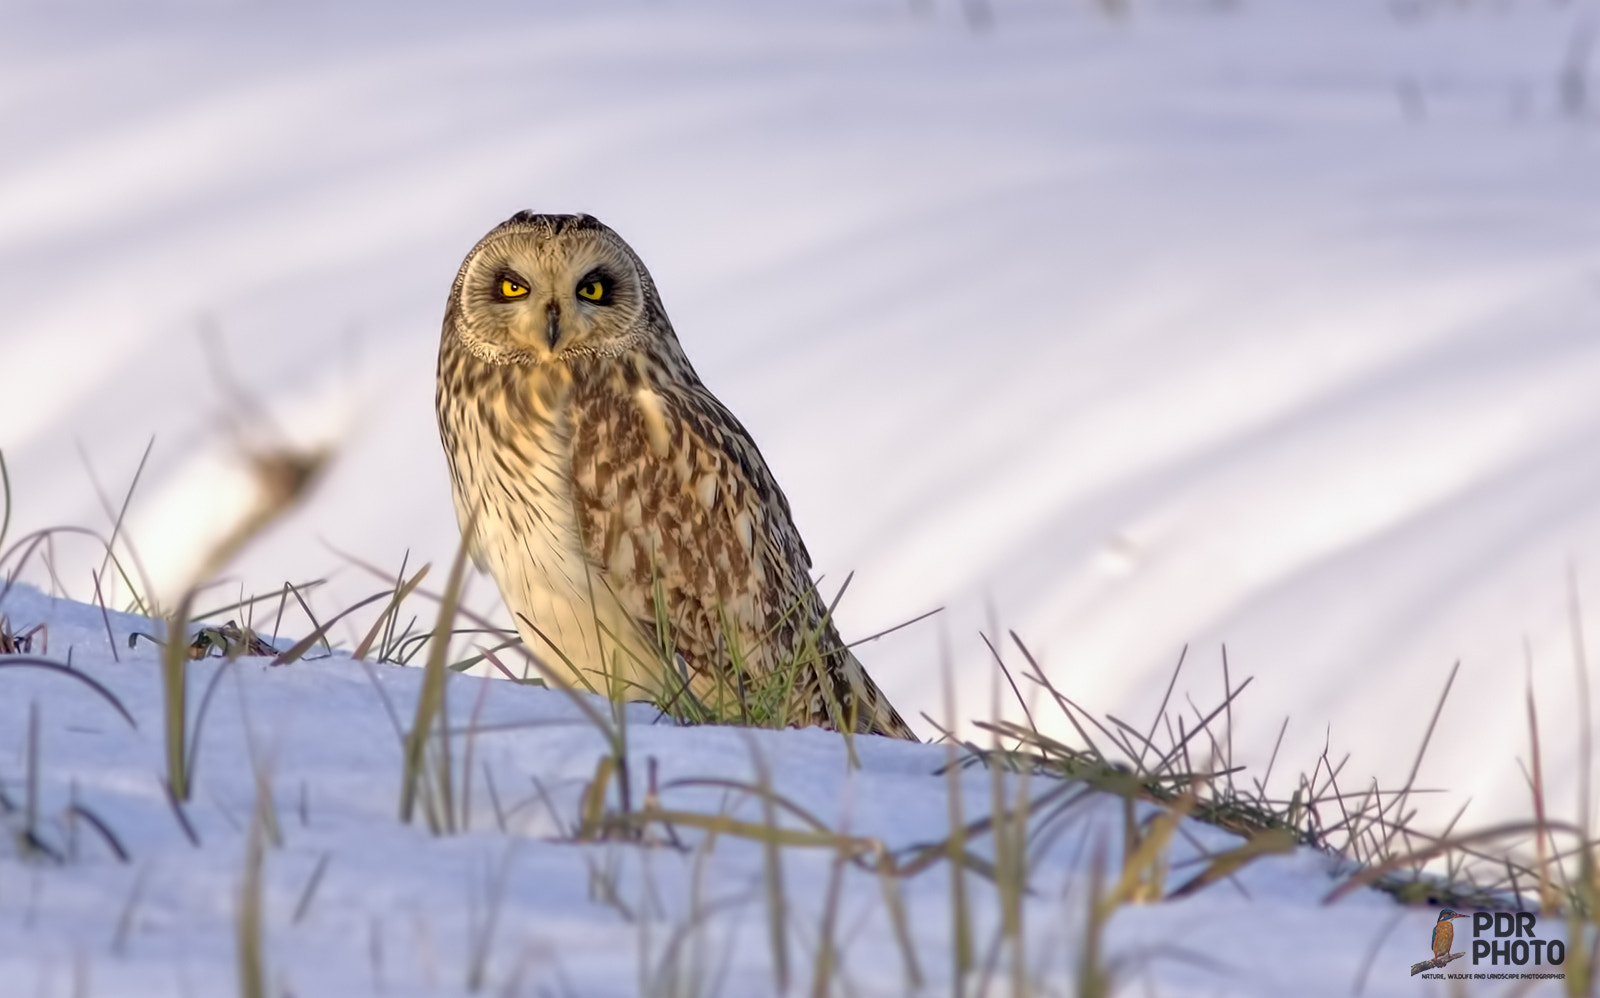 Photograph The Short-eared Owl by PdR Photo on 500px